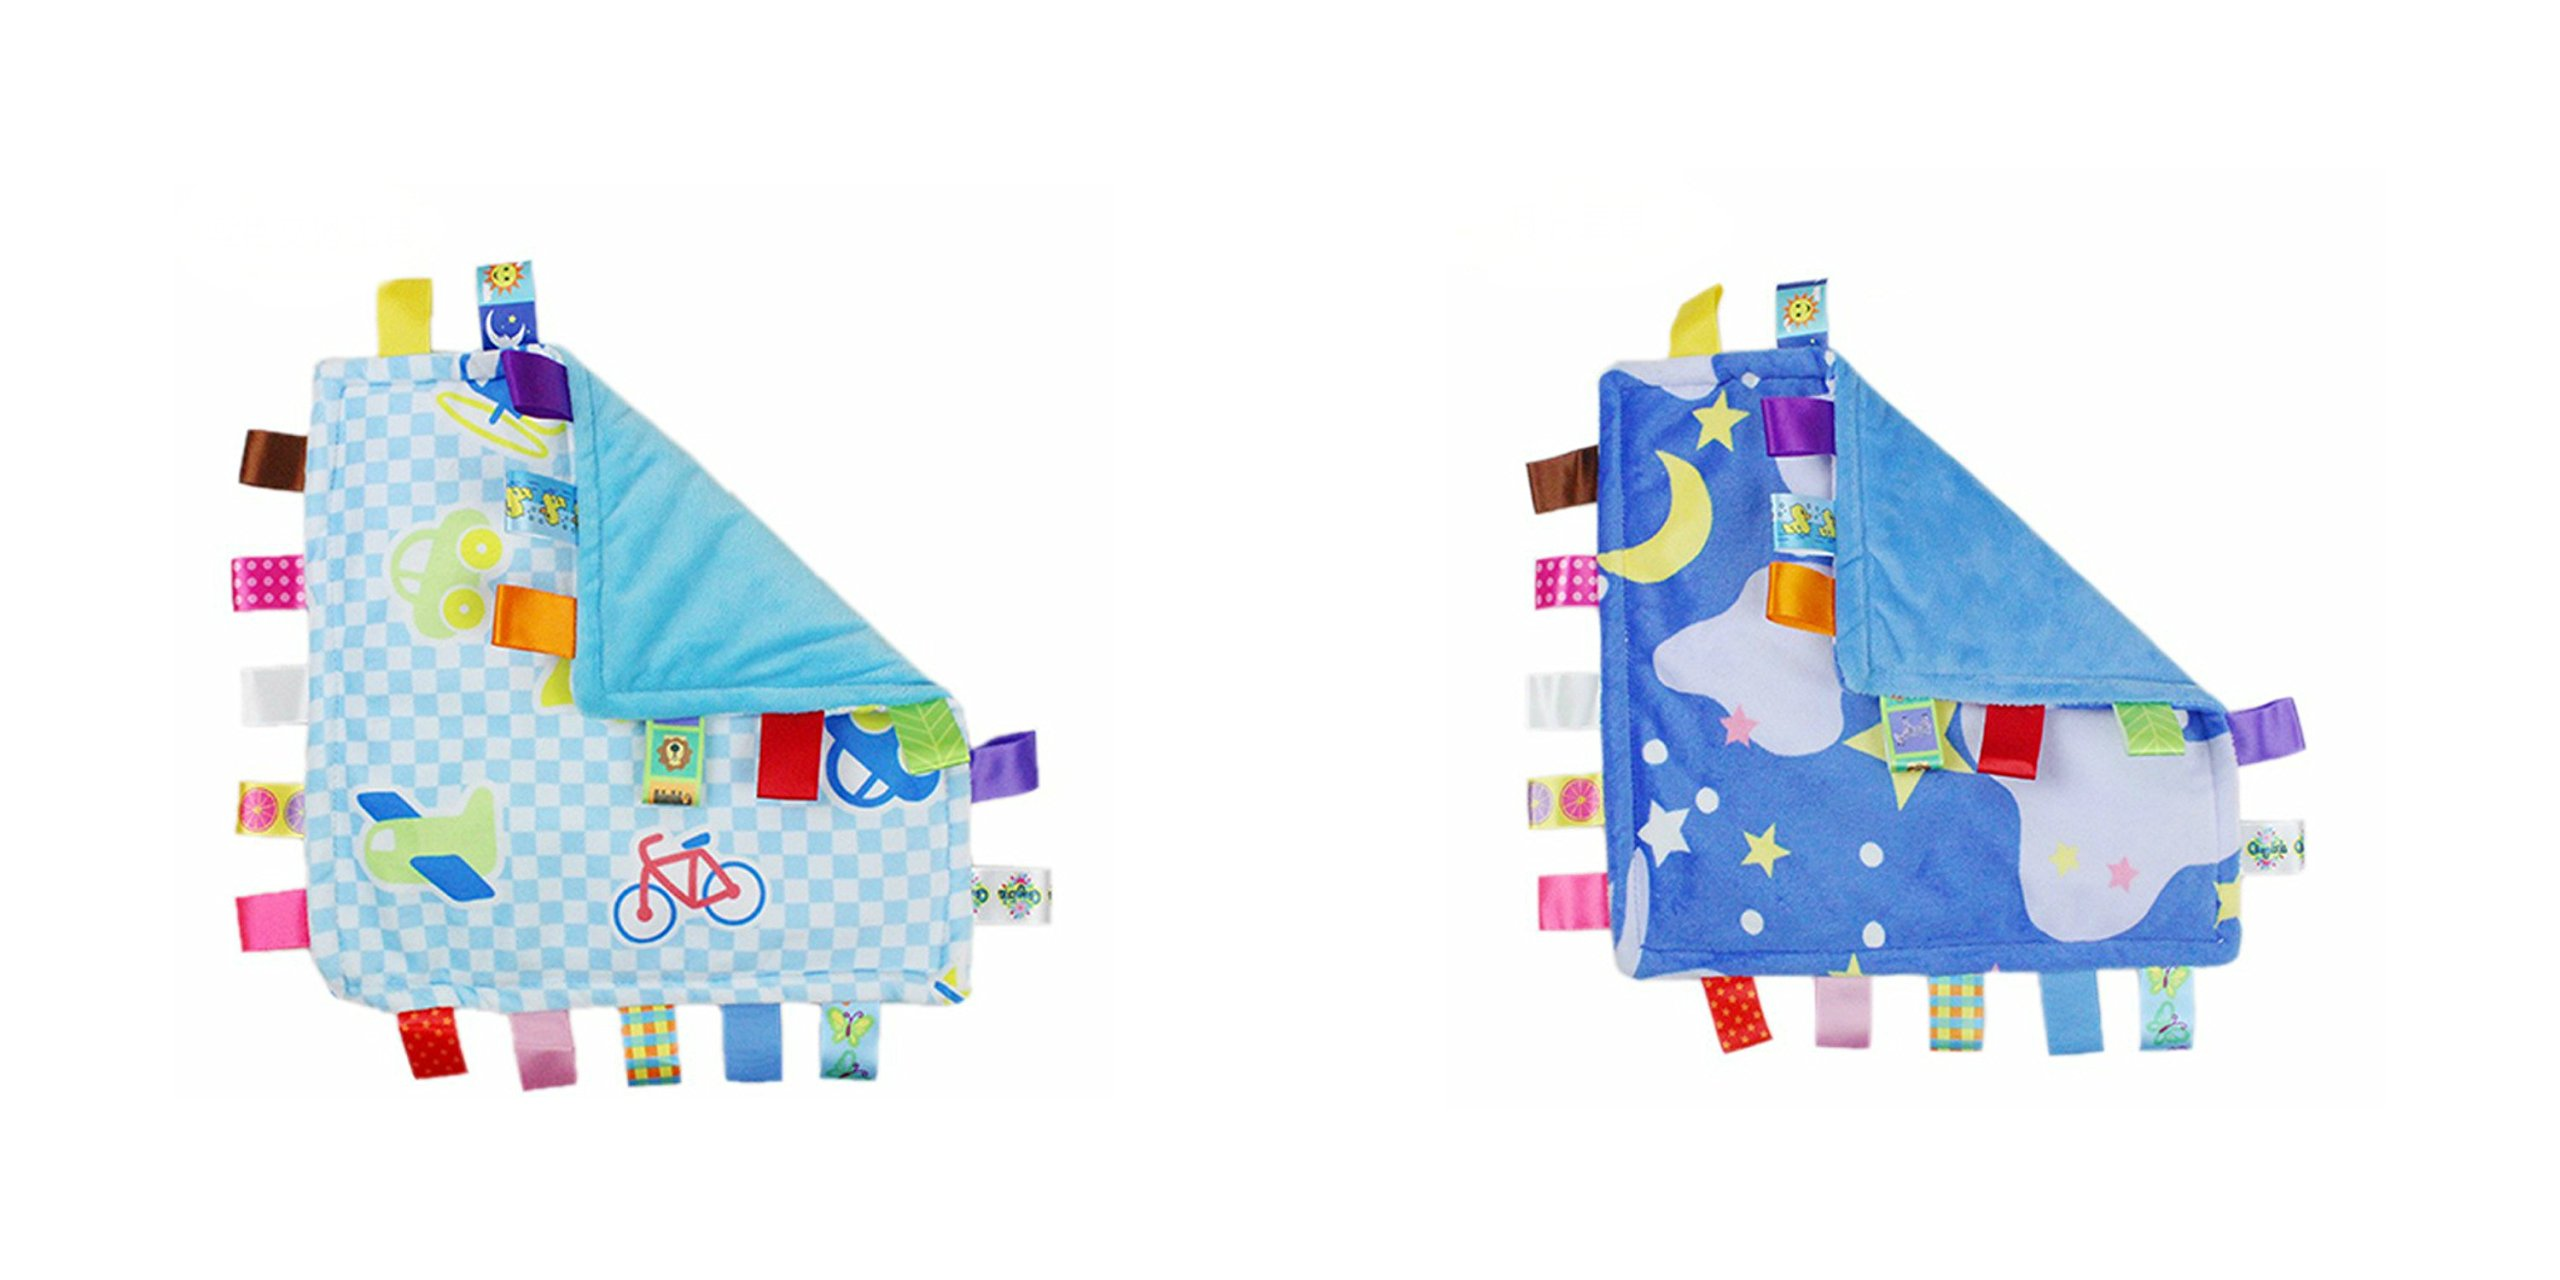 J&C Family Owned Blue Vehicle and Blue Bedtime Night Sky Taggie Style Super Soft Lovey Baby Blanket 2 Pack